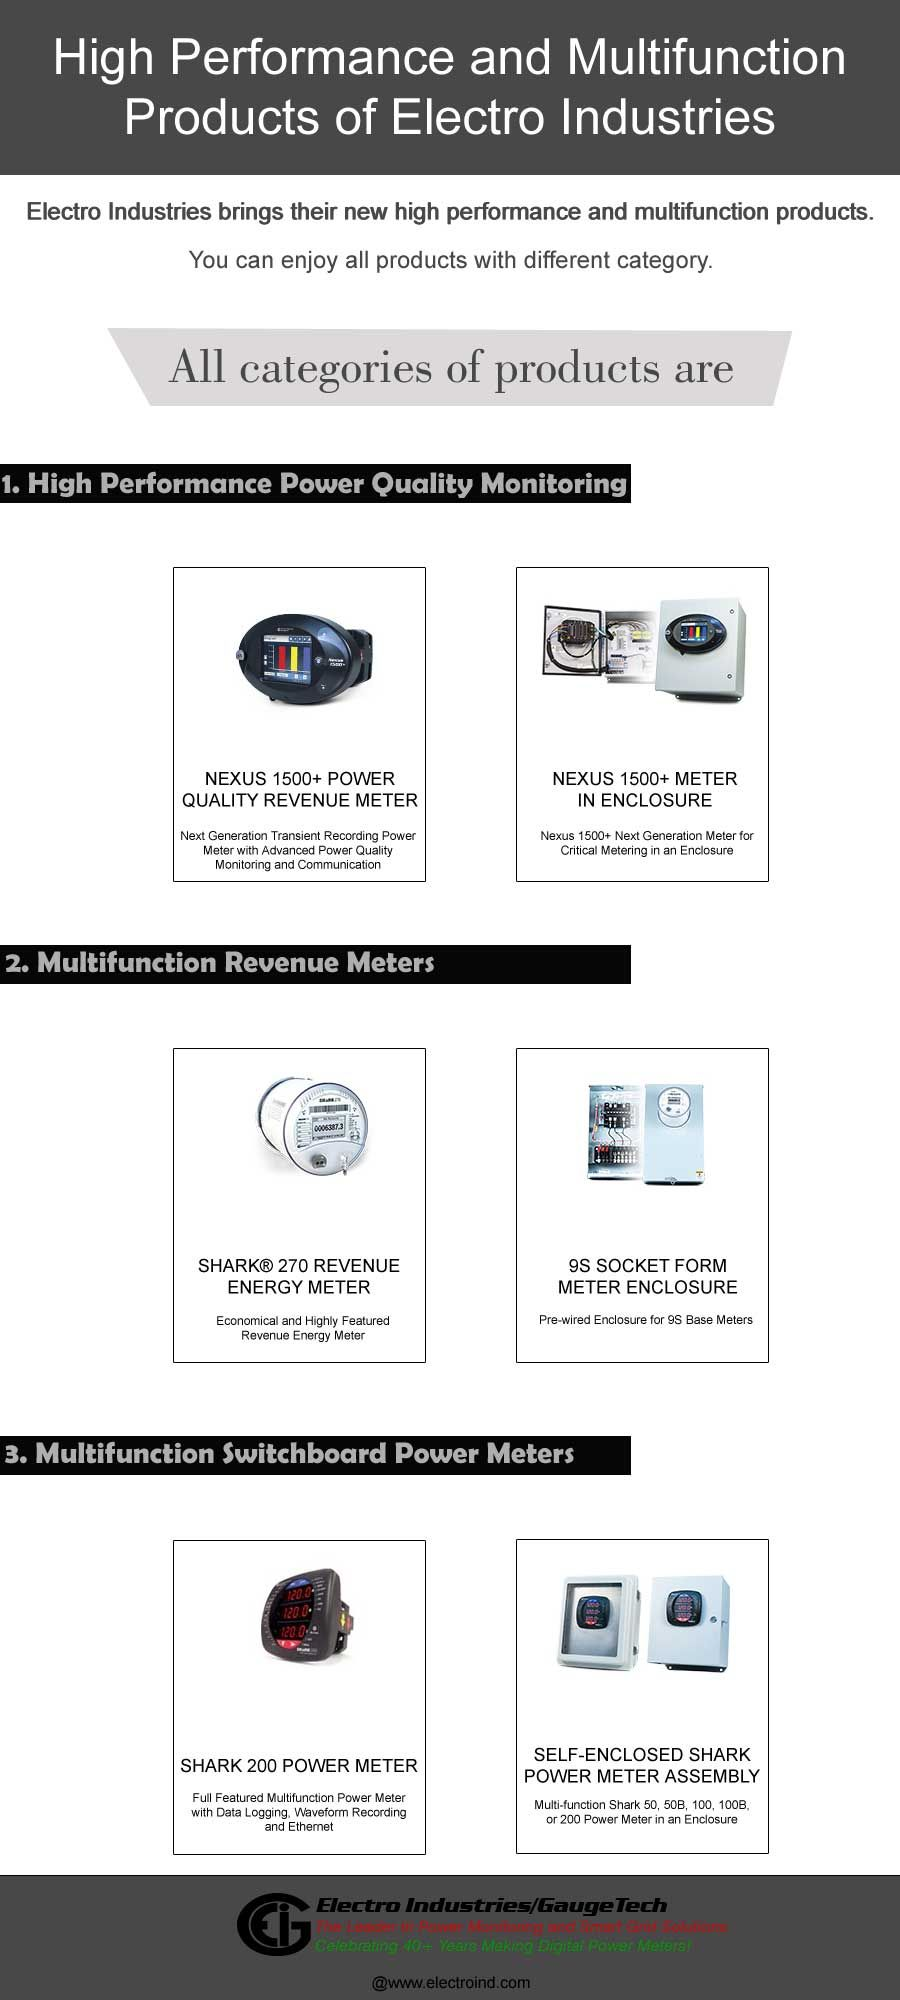 High Performance And Multifunction Products Of Electro Industries Electro Industries Brings Their New High Performance And Multifunctio Power Metering Revenue